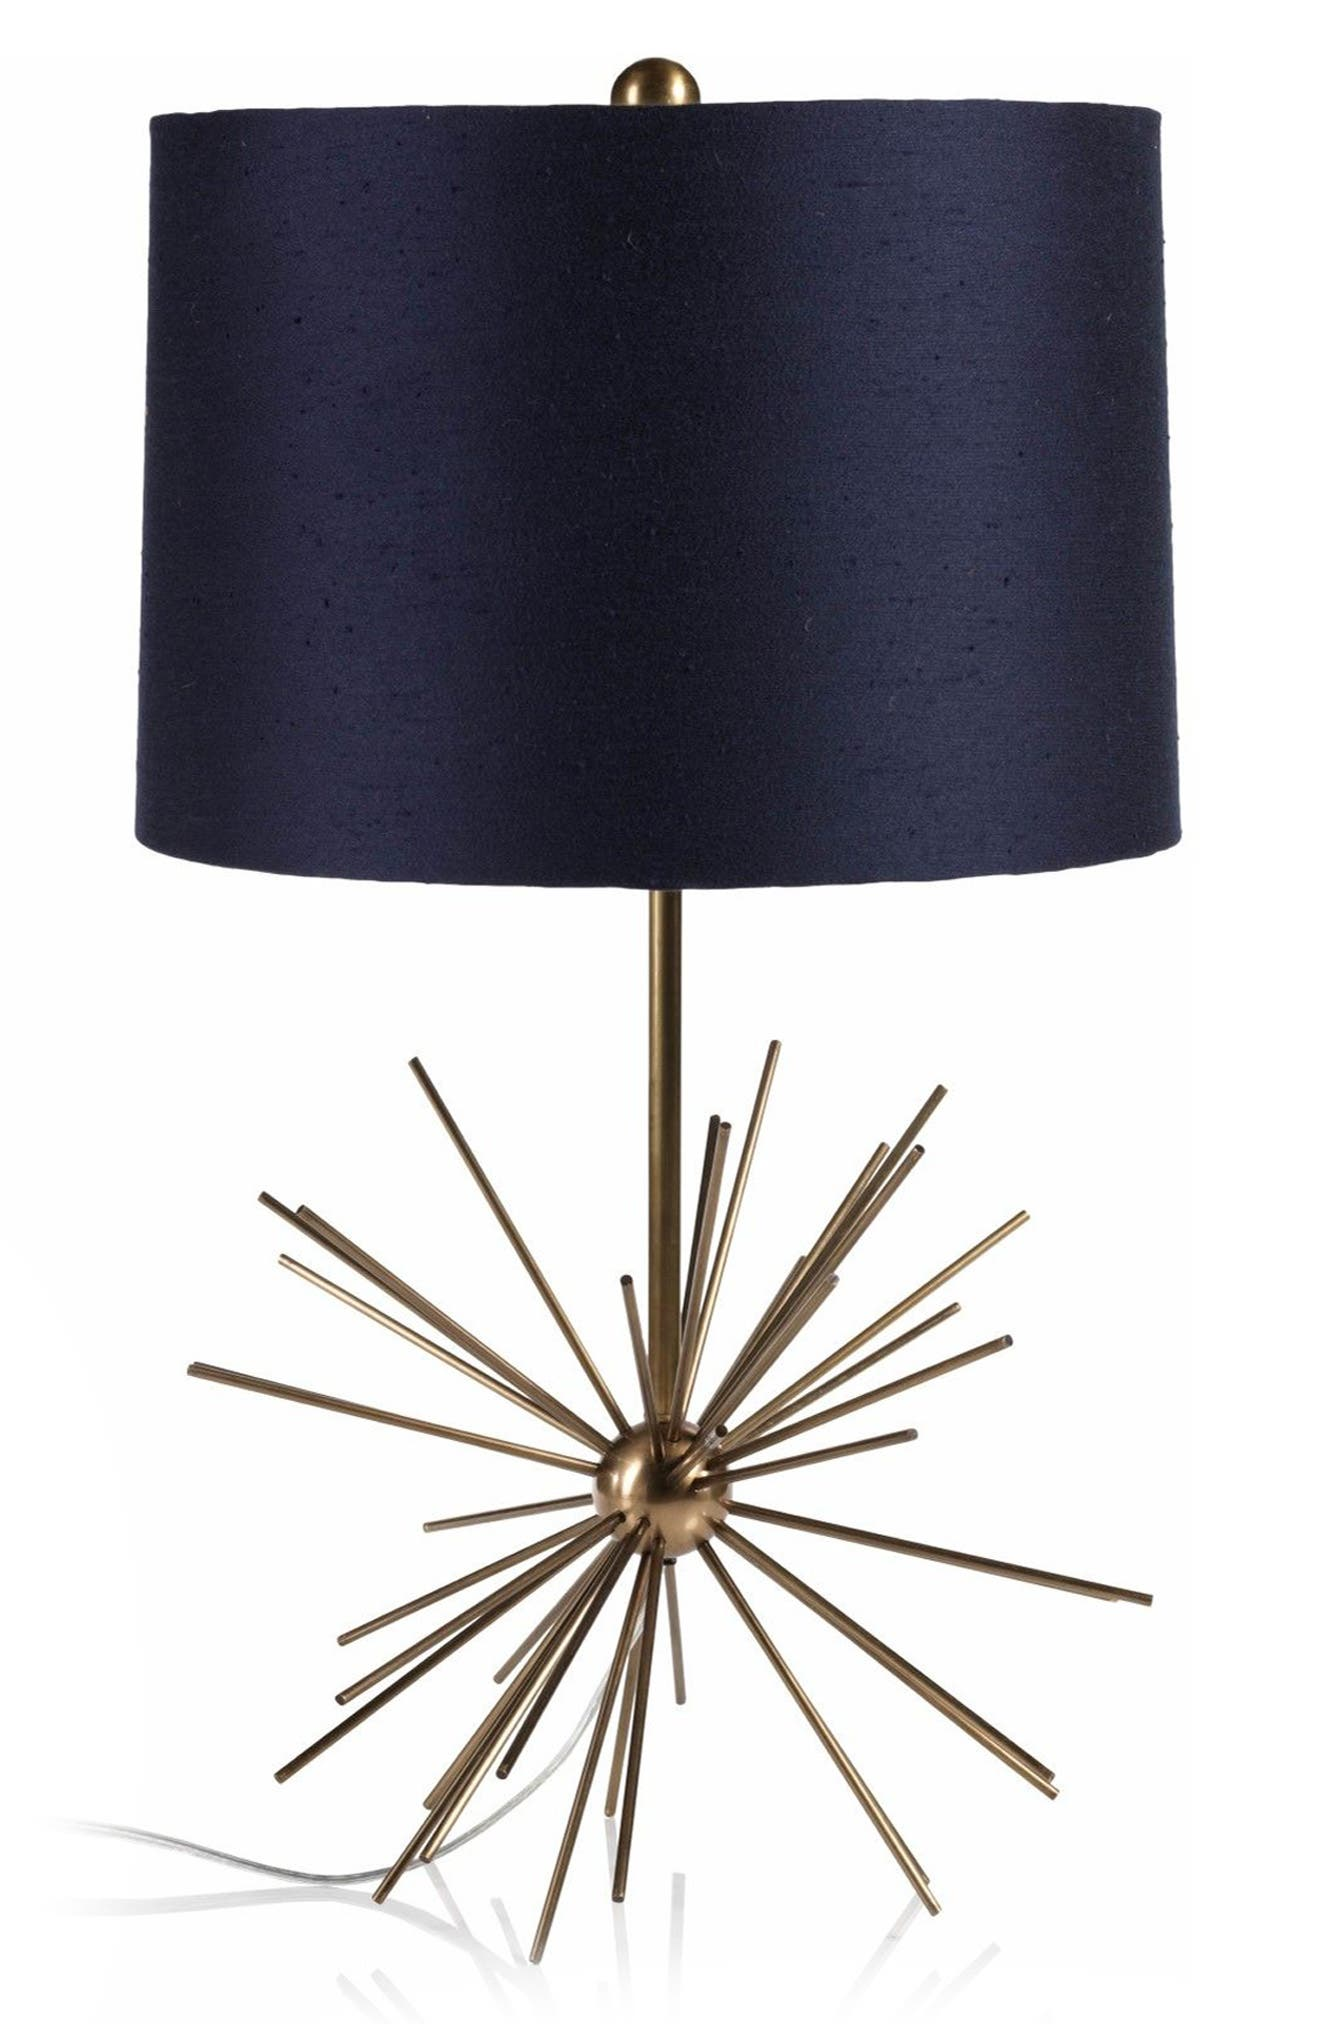 Zodax Oslo Table Lamp